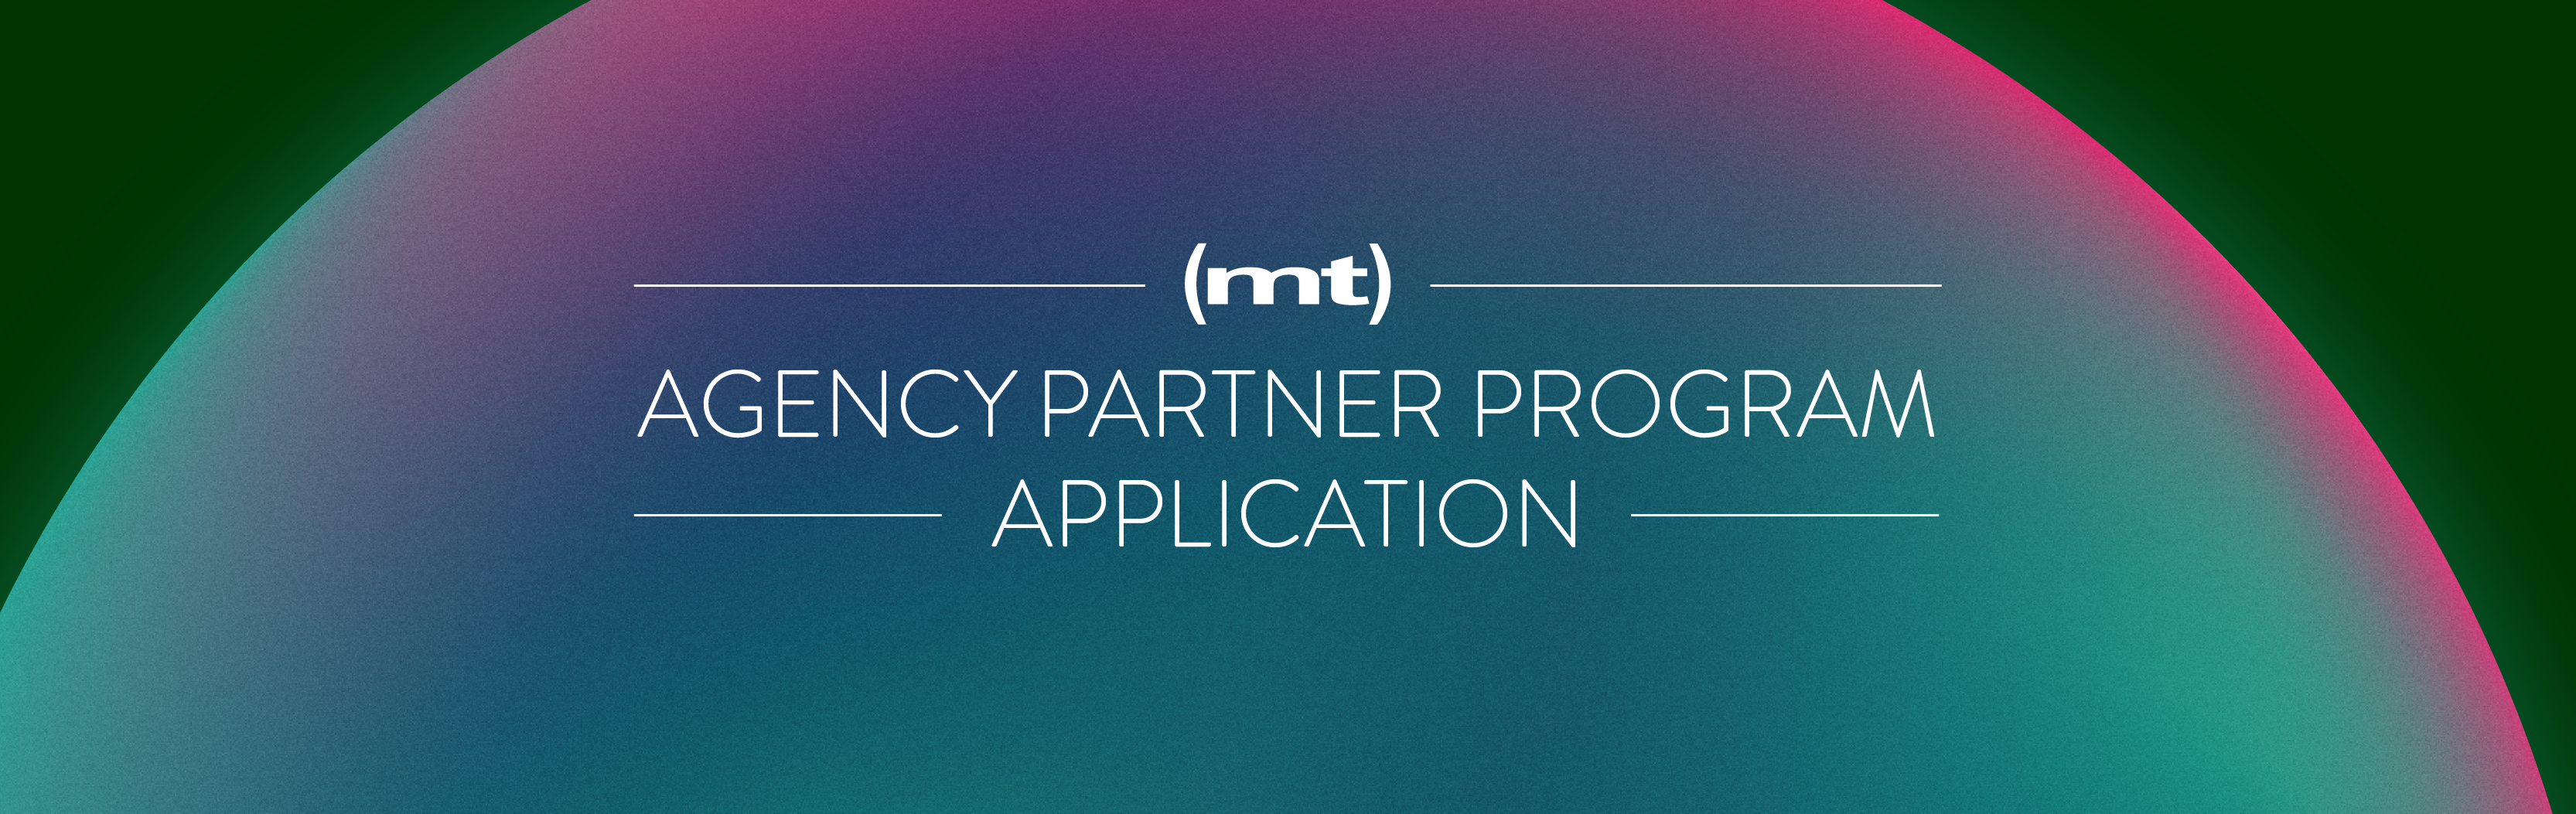 Media Temple Agency Partner Program Application